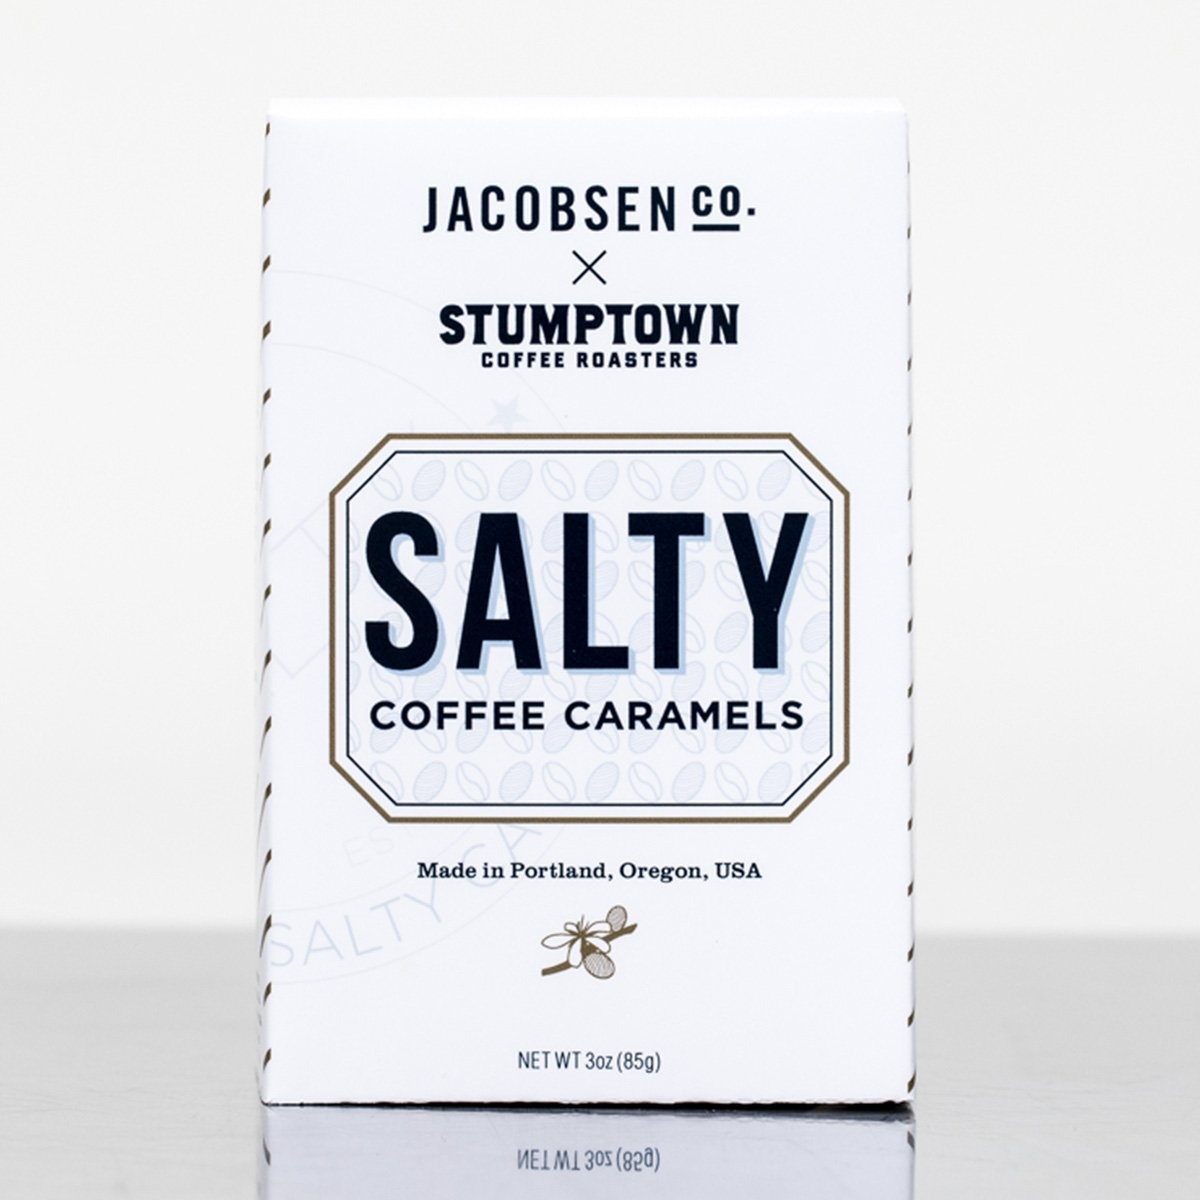 Jacobsen Salt Salty Coffee Caramel Box - 3.0 oz